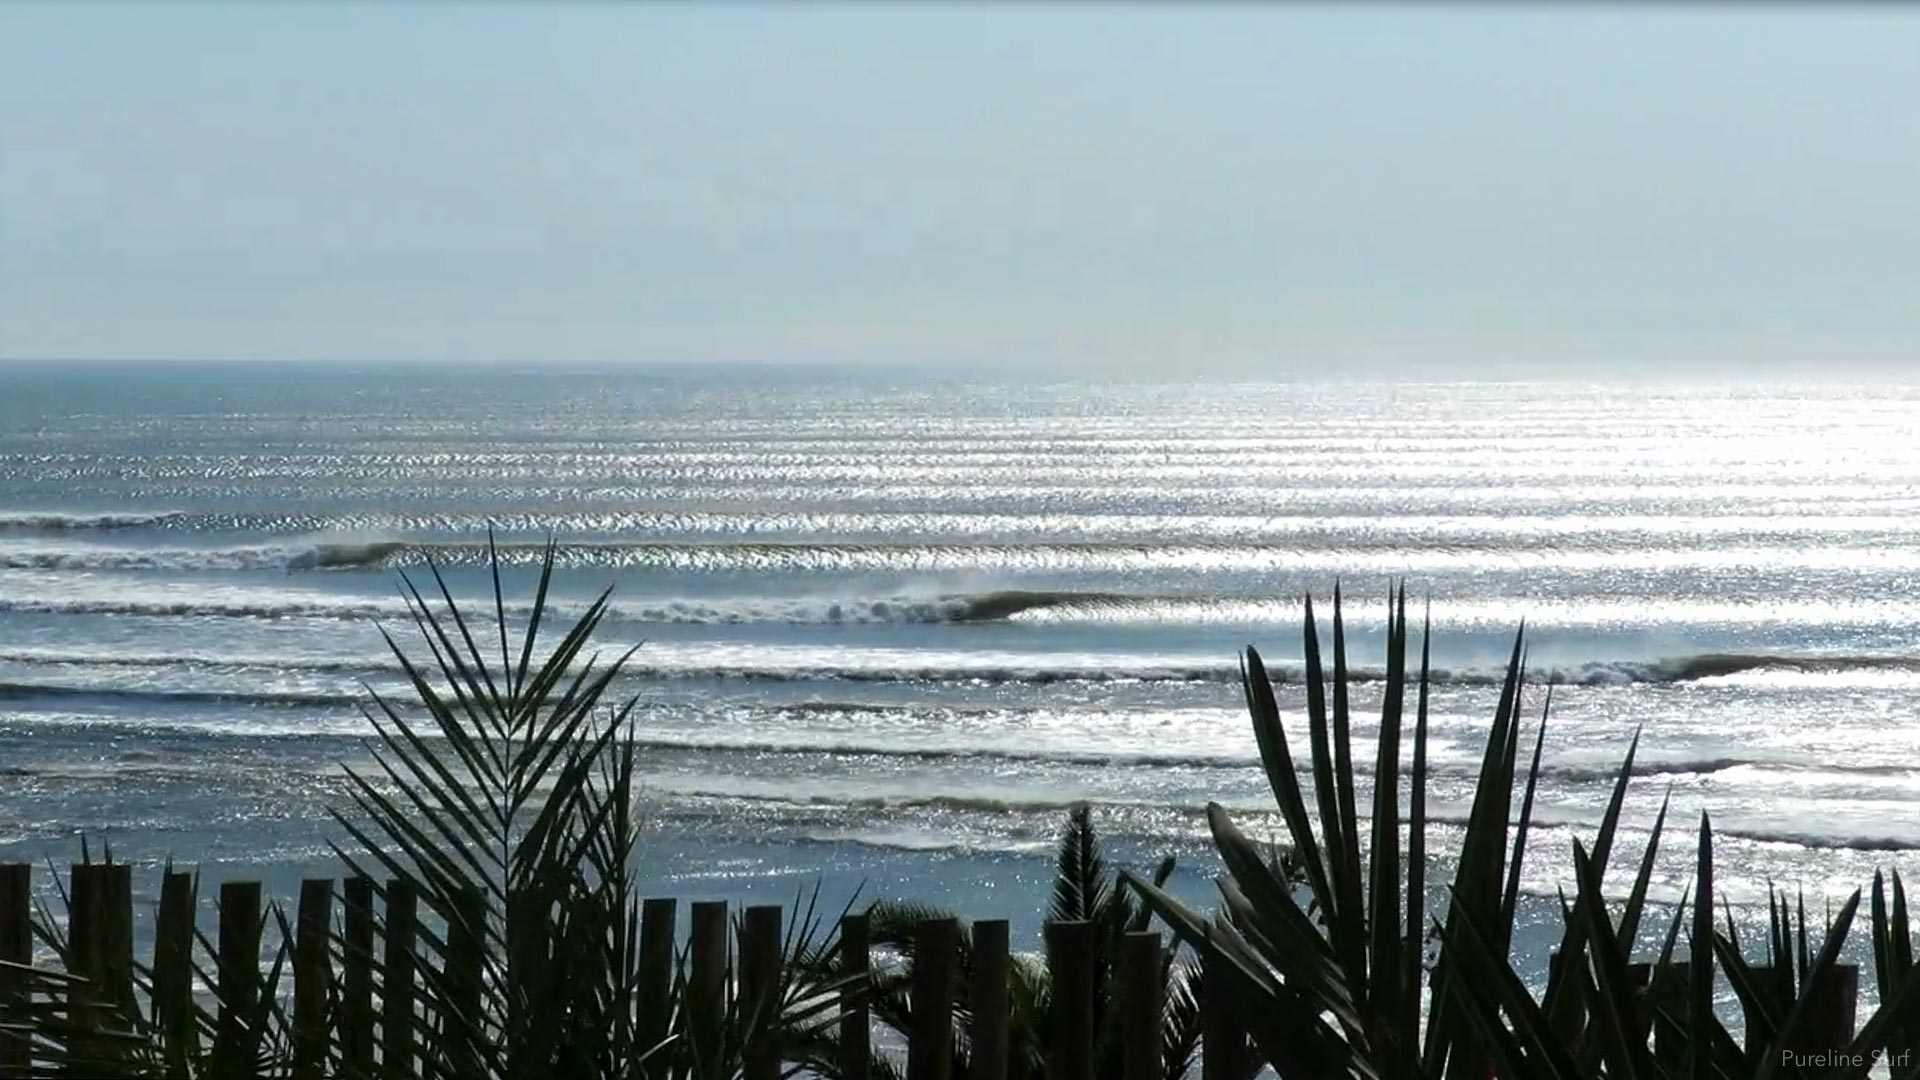 The amazing waves at Chicama, Peru during midday. Perfect lines of surf during a worldwide surf guiding trip with Pureline Surf.